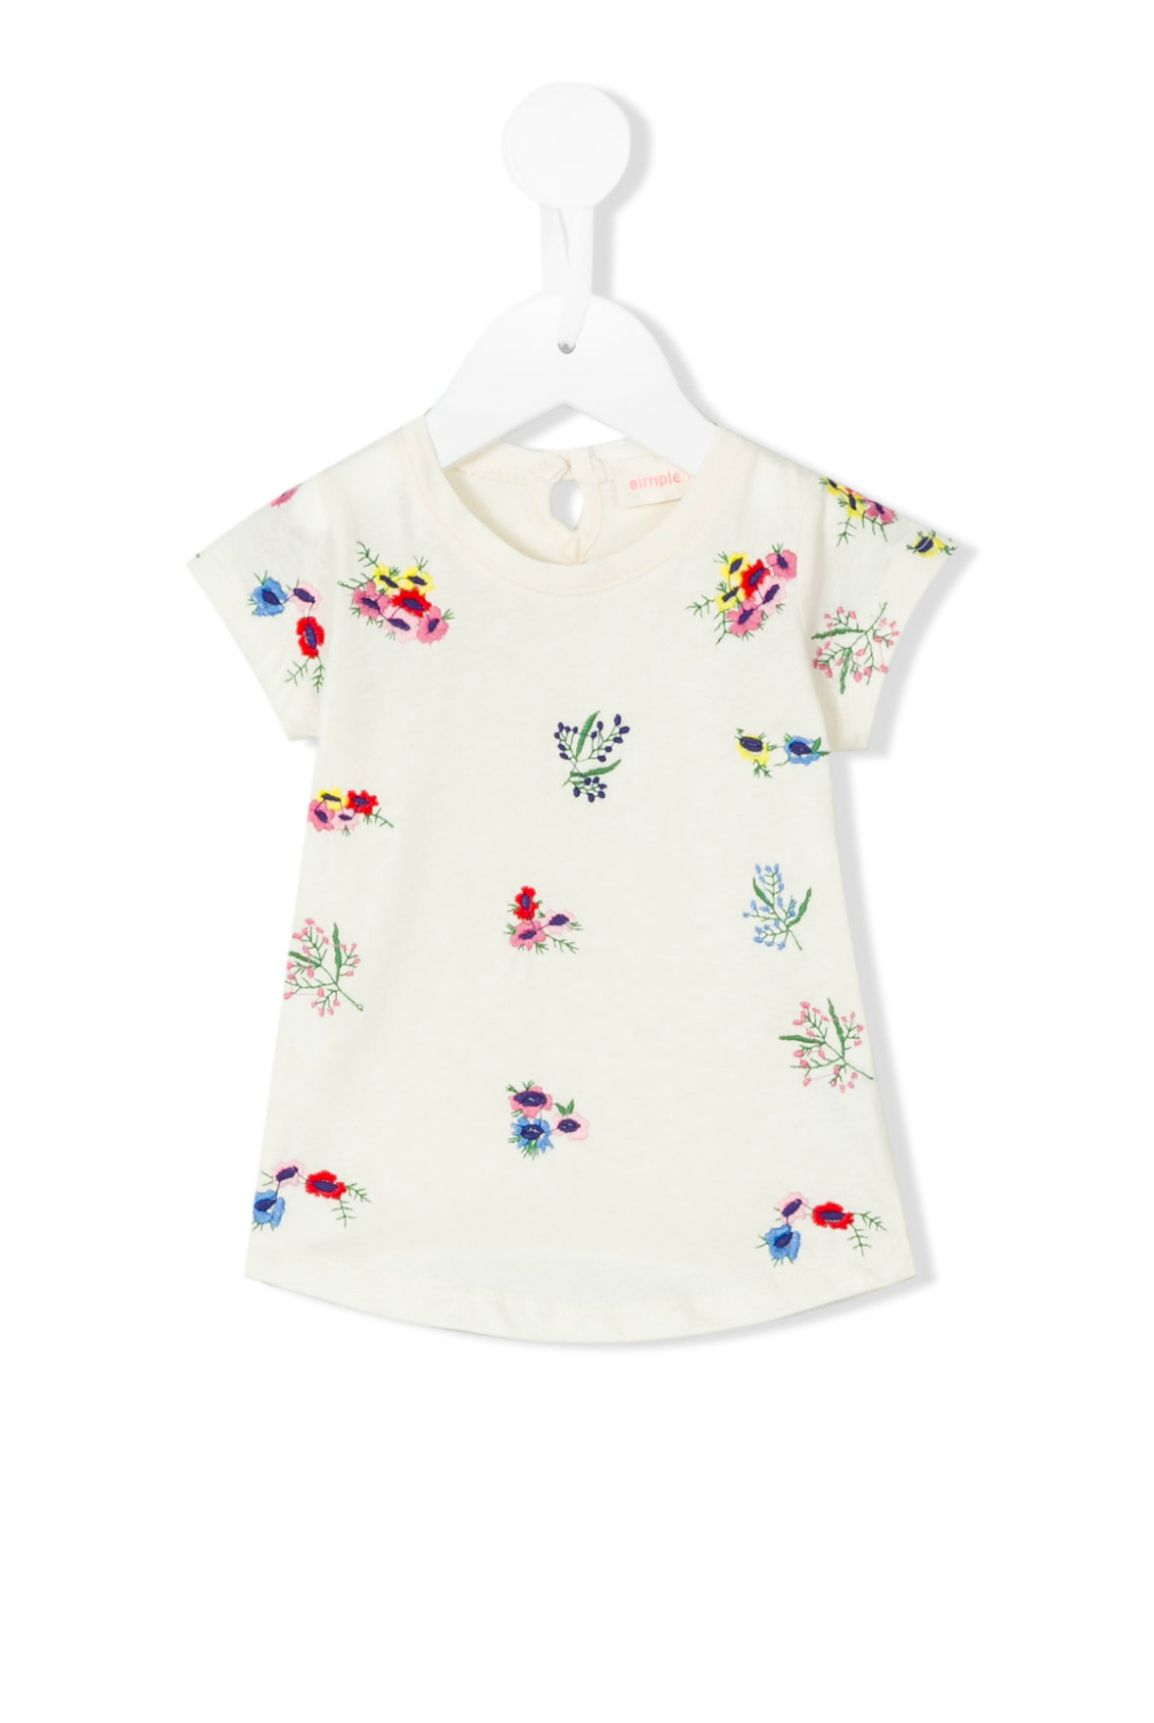 Floral Embroidered Tee | Simple Kids